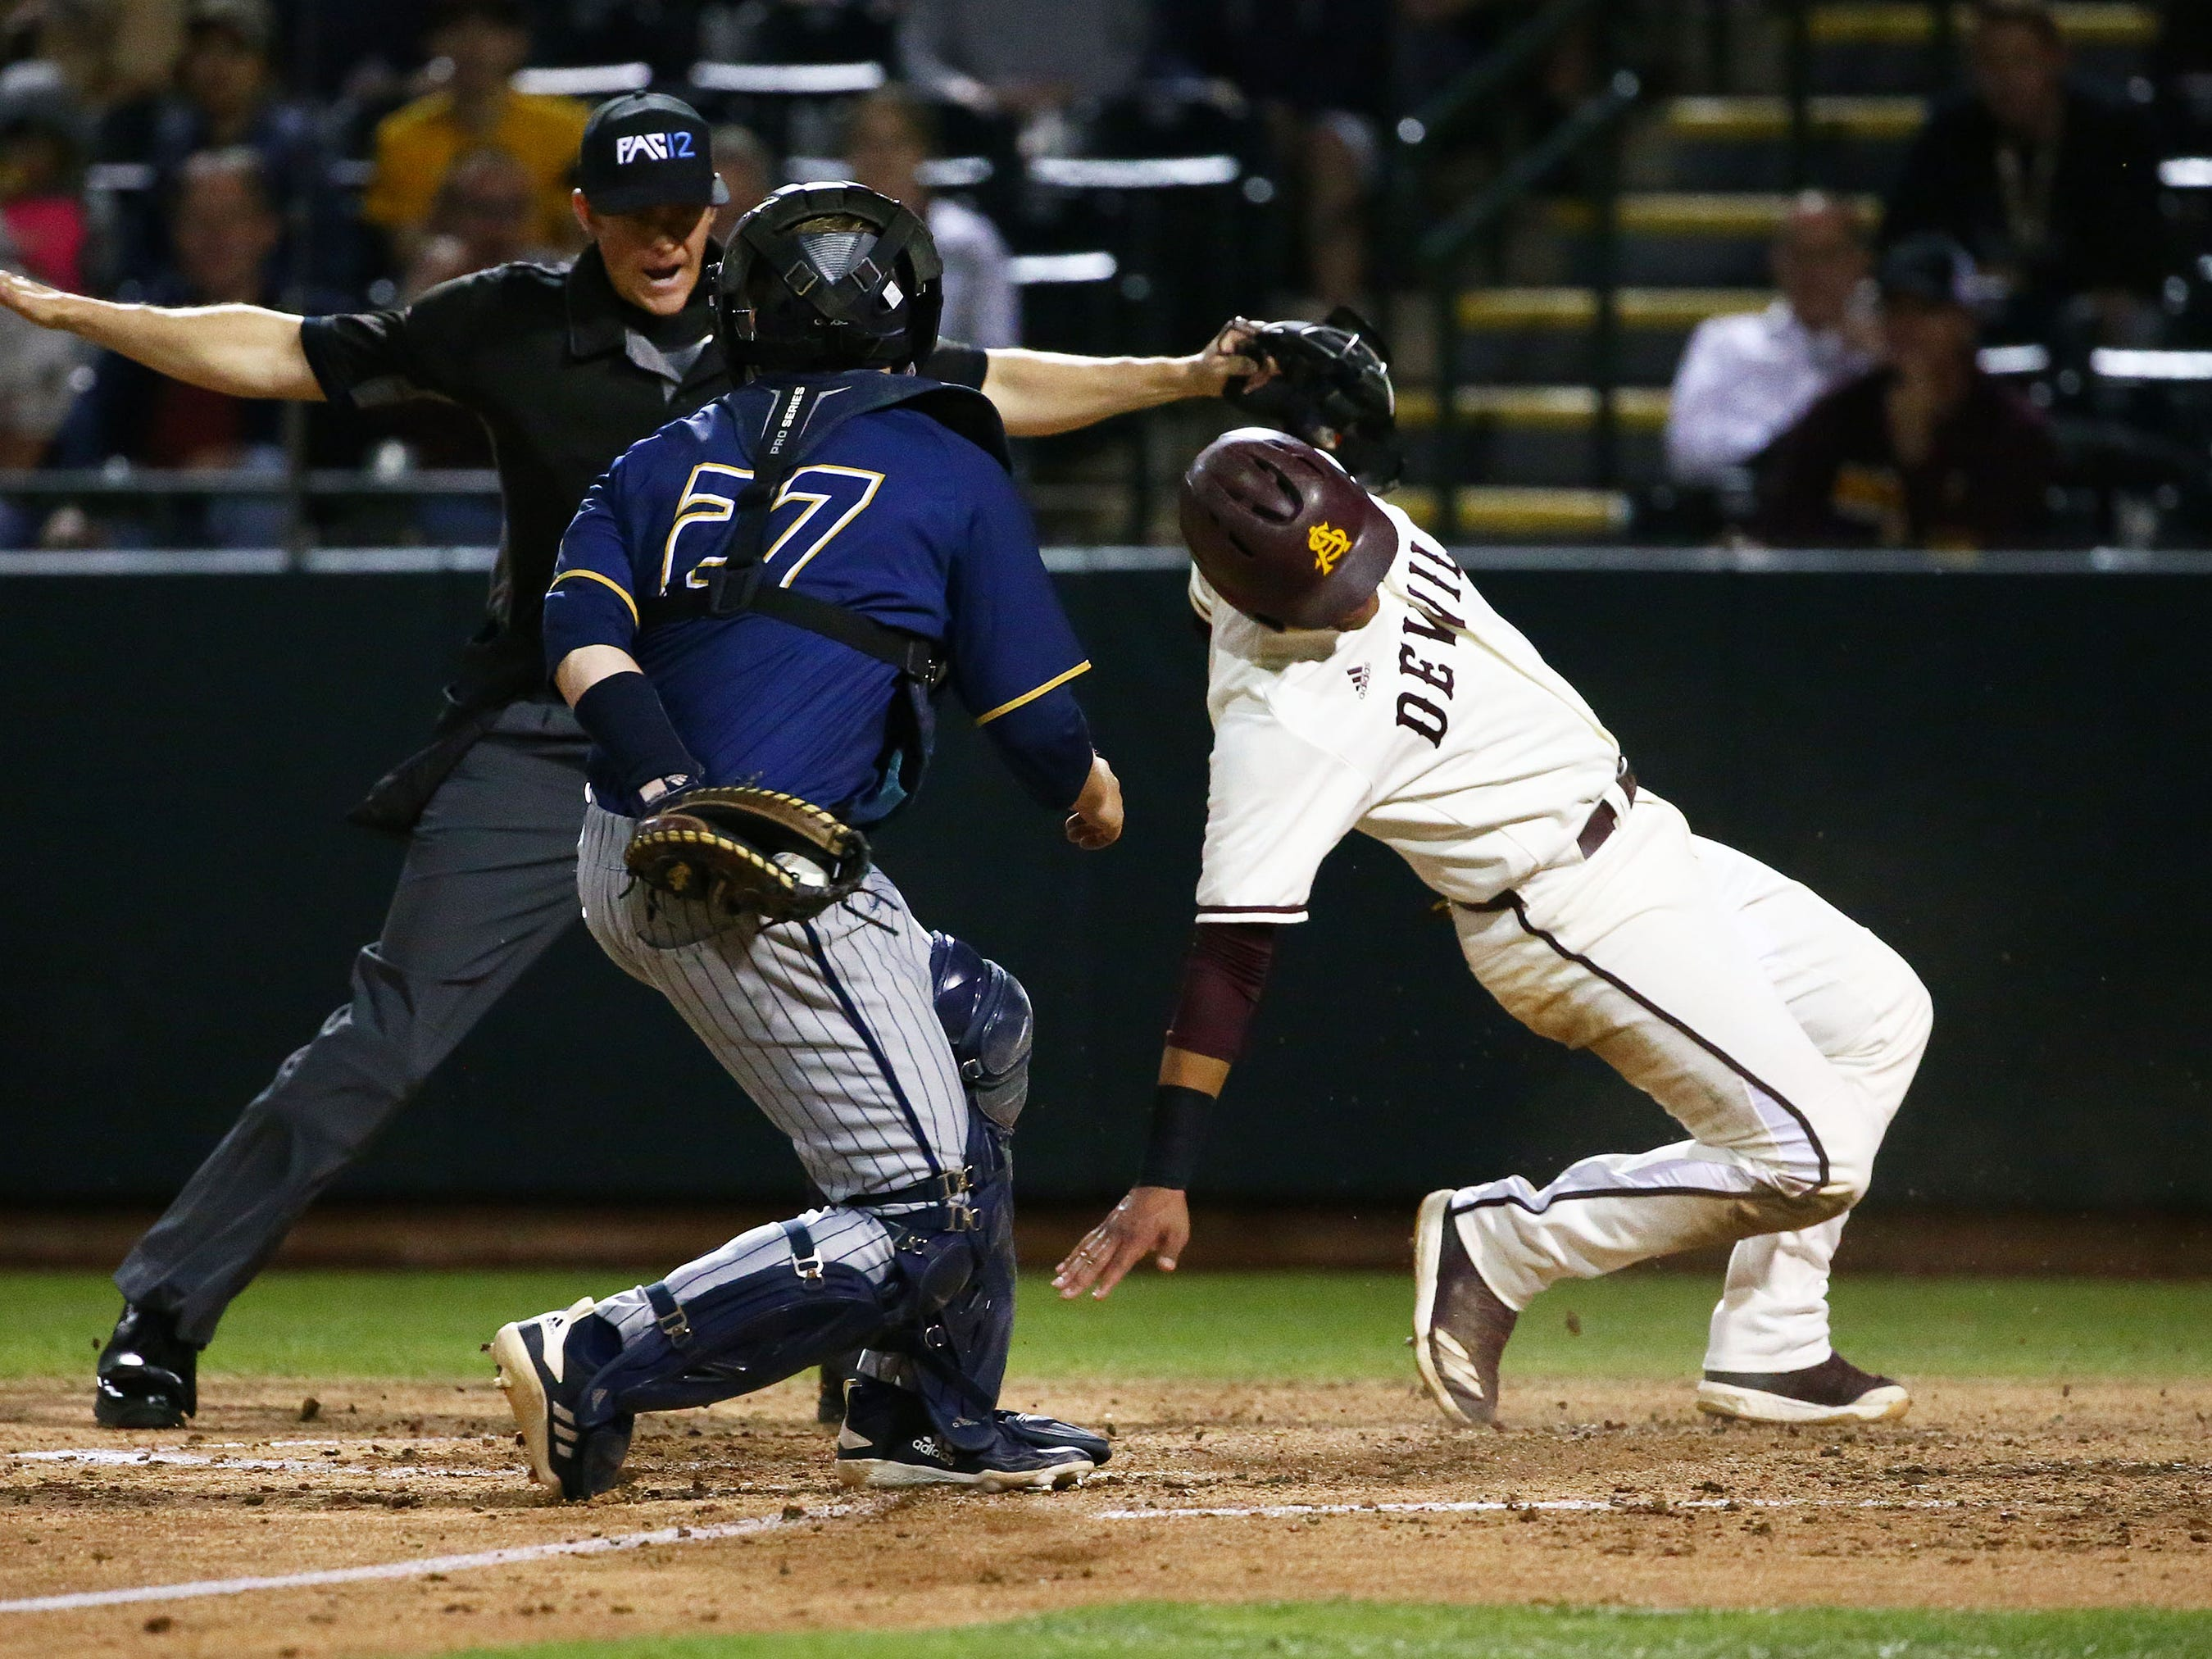 Arizona State Sun Devils Carter Aldrete (21) scores past the late tag by California Baptist Lancers catcher Rory Smith in the third inning at Phoenix Municipal Stadium on Mar. 20, 2019 in Phoenix, Ariz.